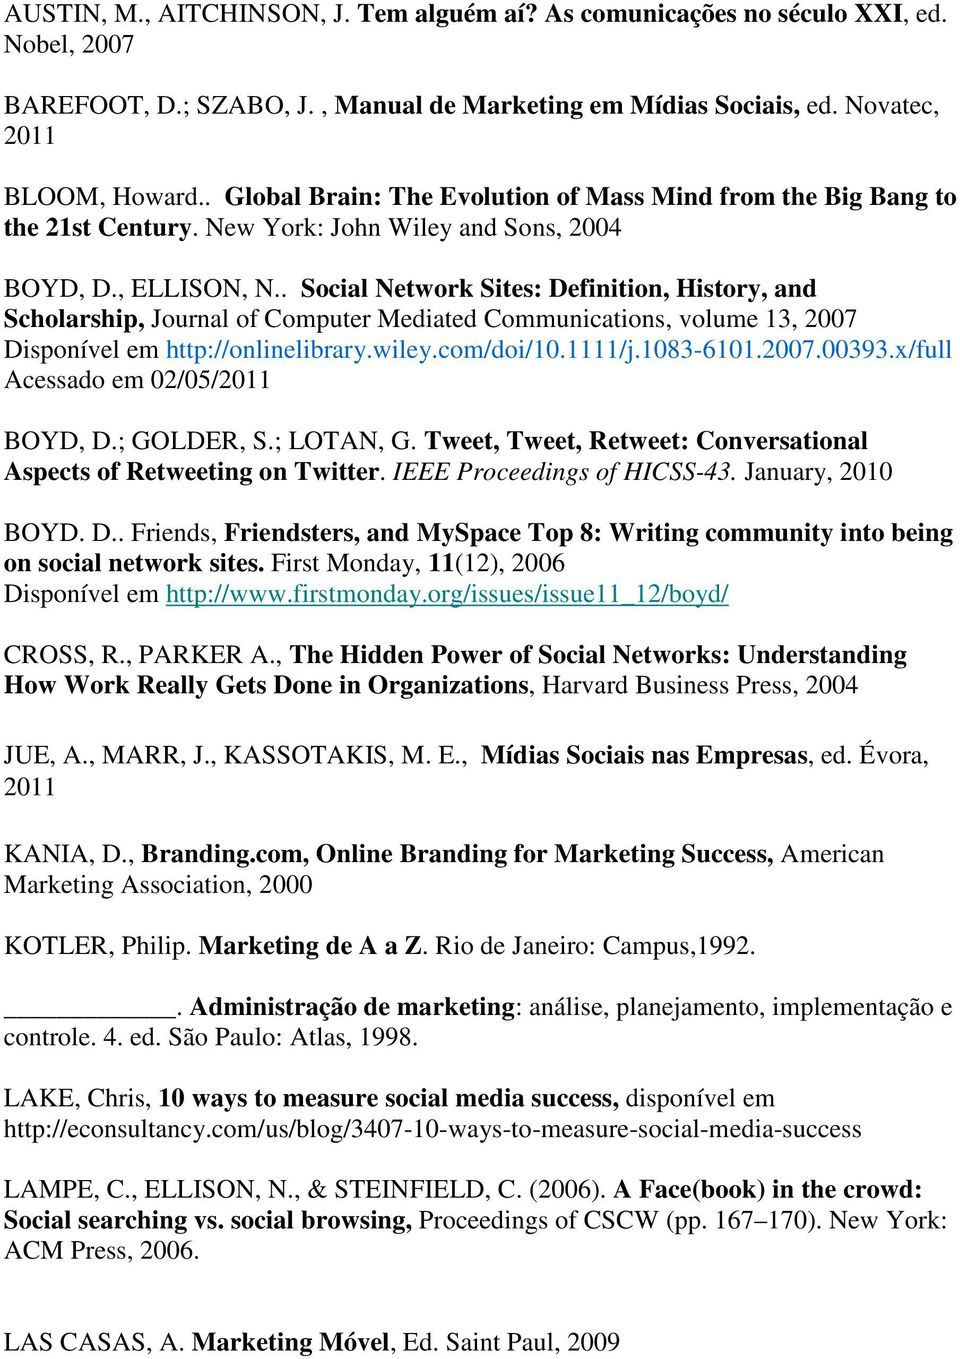 . Social Network Sites: Definition, History, and Scholarship, Journal of Computer Mediated Communications, volume 13, 2007 Disponível em http://onlinelibrary.wiley.com/doi/10.1111/j.1083-6101.2007.00393.